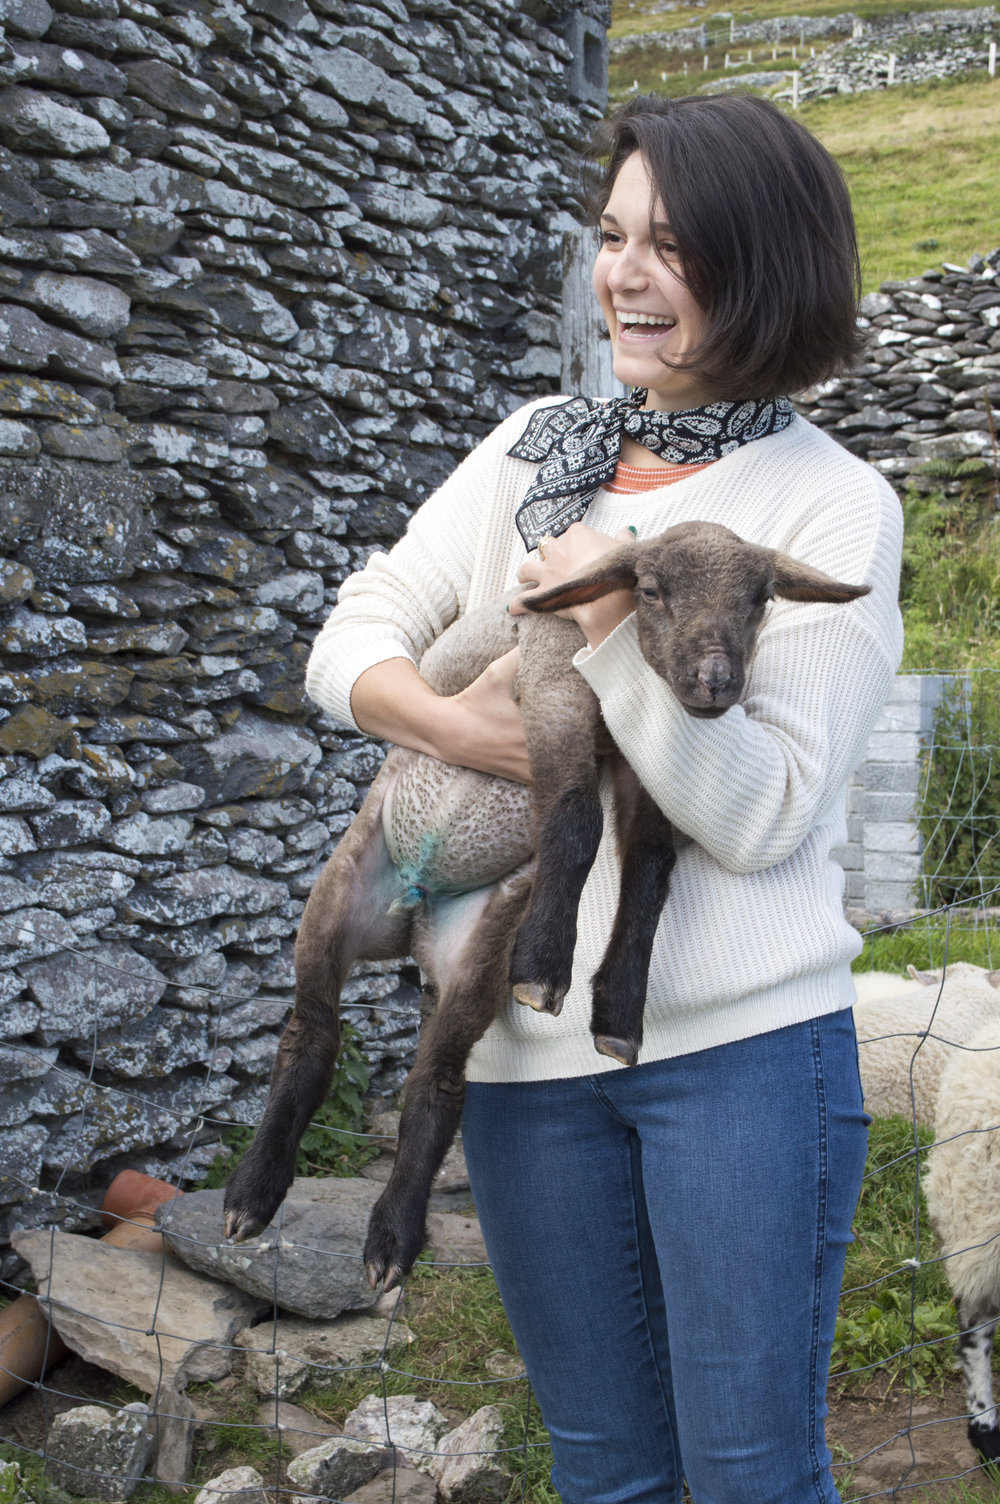 tina was super excited about the lambs too!